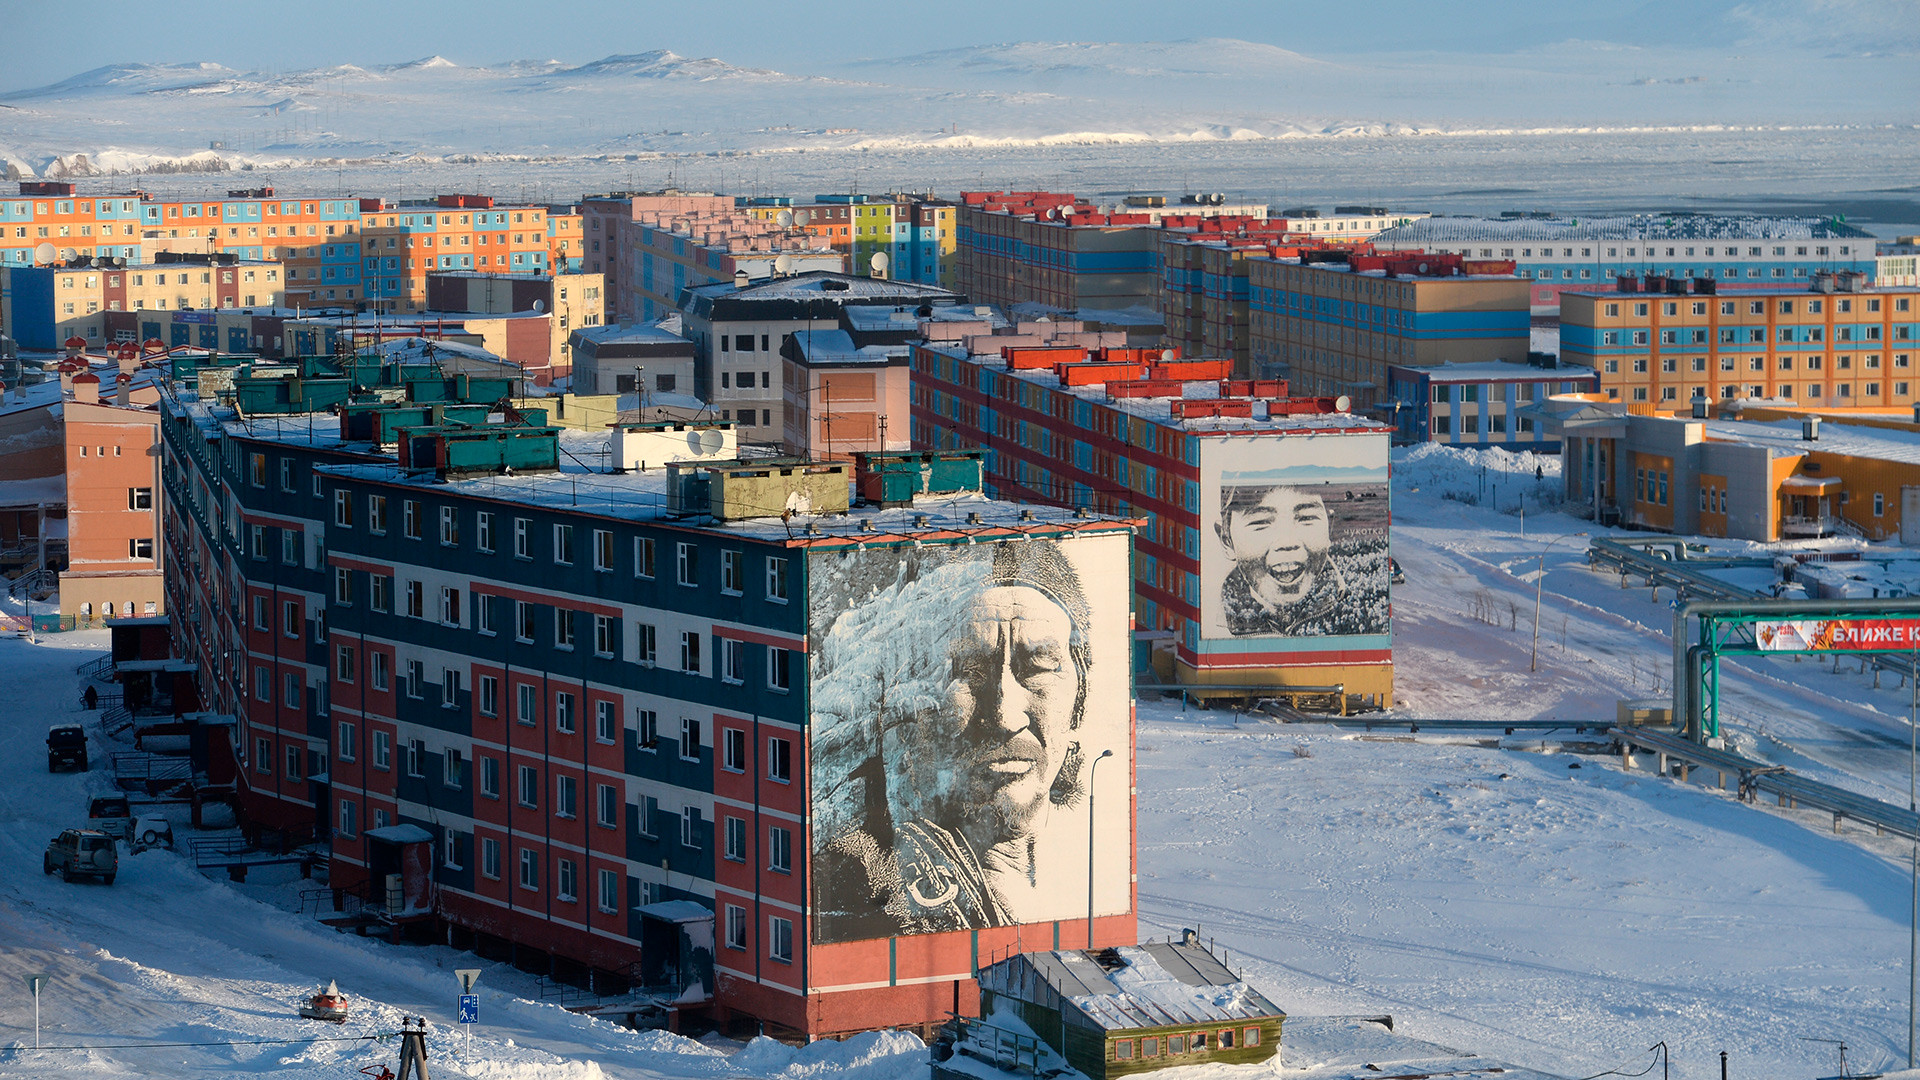 Residential buildings in modern Anadyr, the capital of Chukotka Autonomous Okrug within Russia.